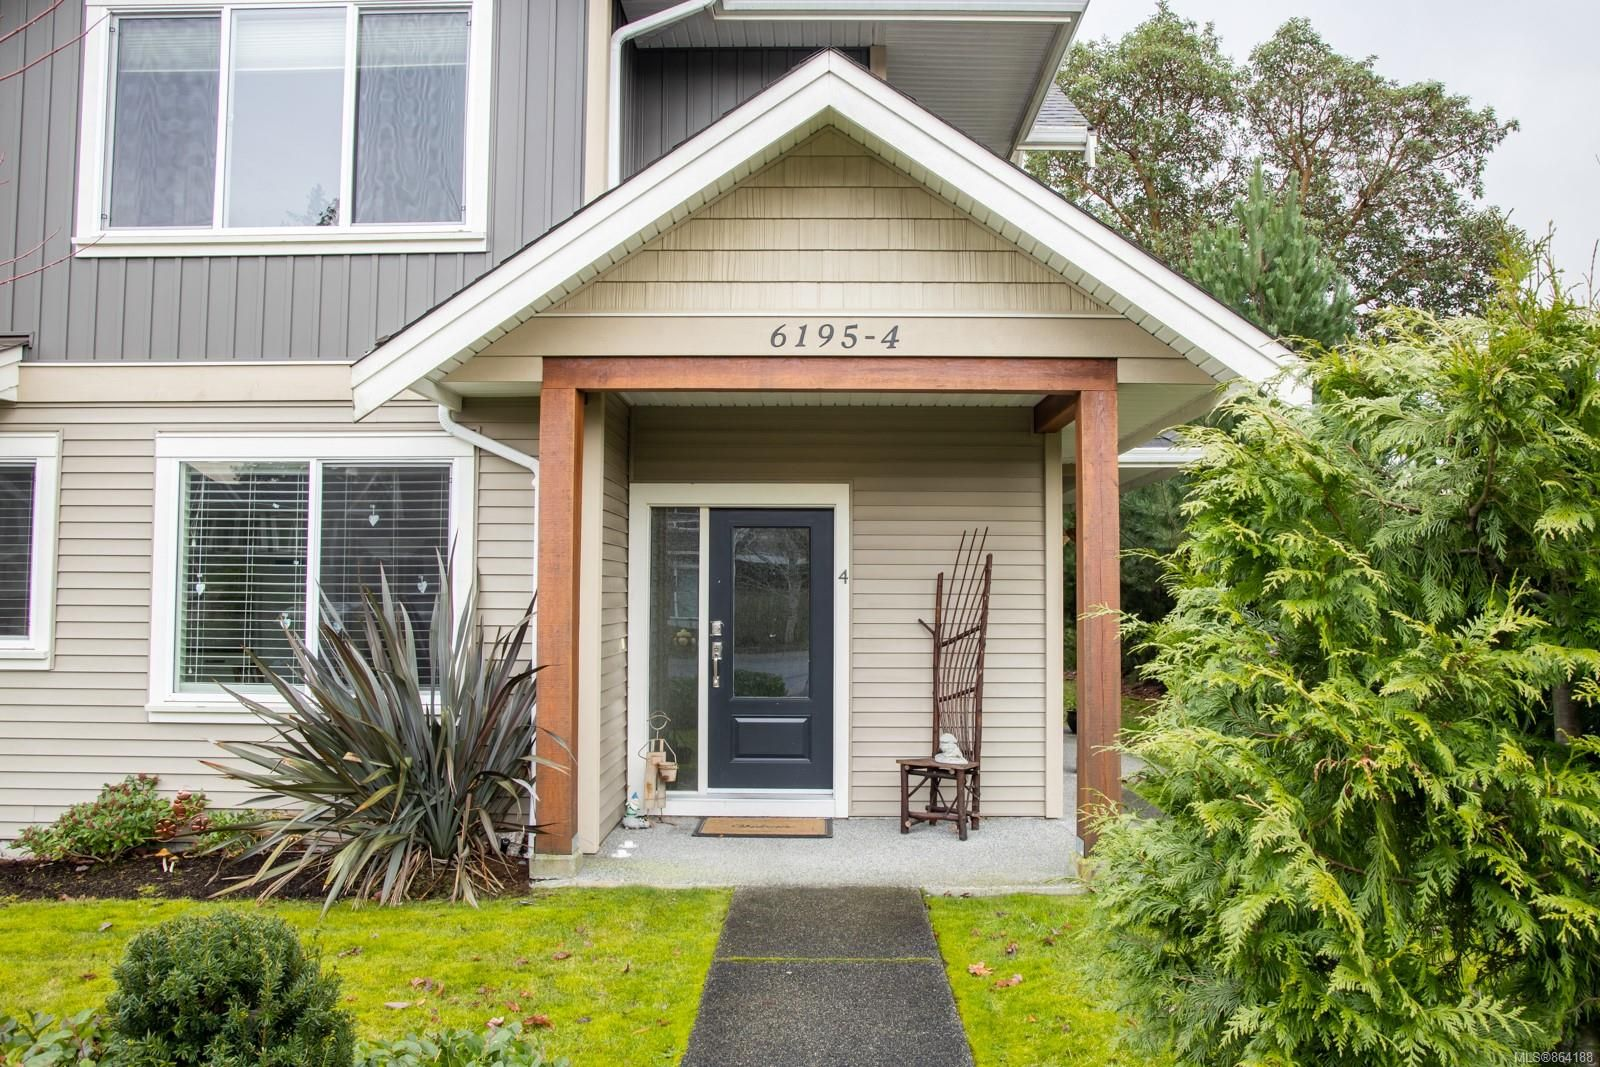 Main Photo: 4 6195 Nitinat Way in : Na North Nanaimo Row/Townhouse for sale (Nanaimo)  : MLS®# 864188